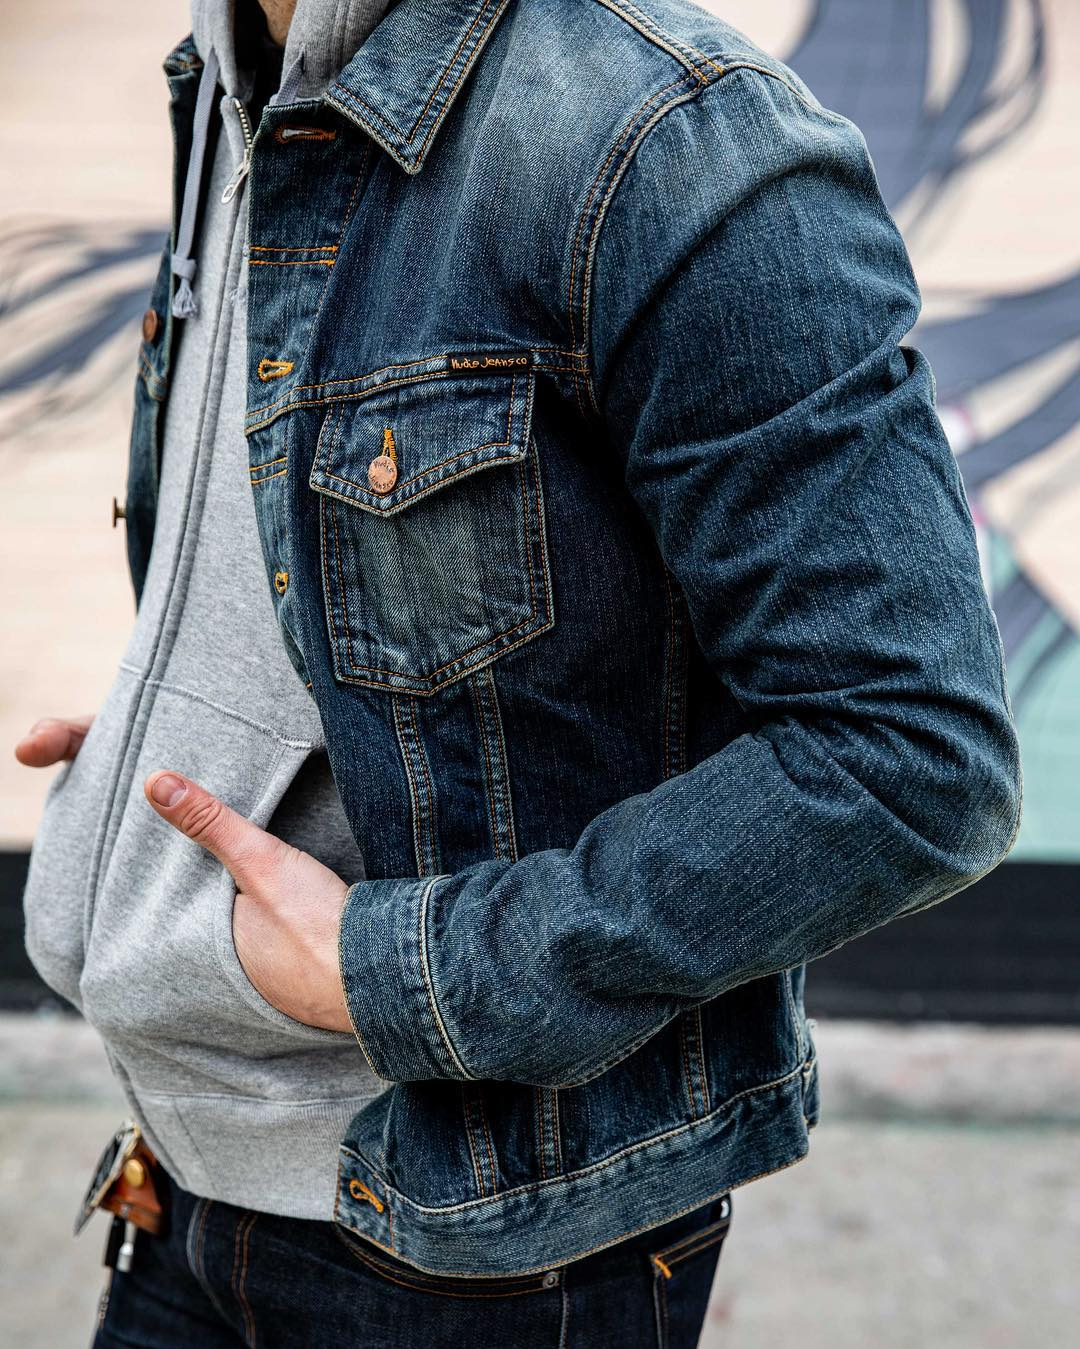 de2f487c1747 Nudie Jeans® | 100% Organic Denim Collection | Official Site - Nudie ...